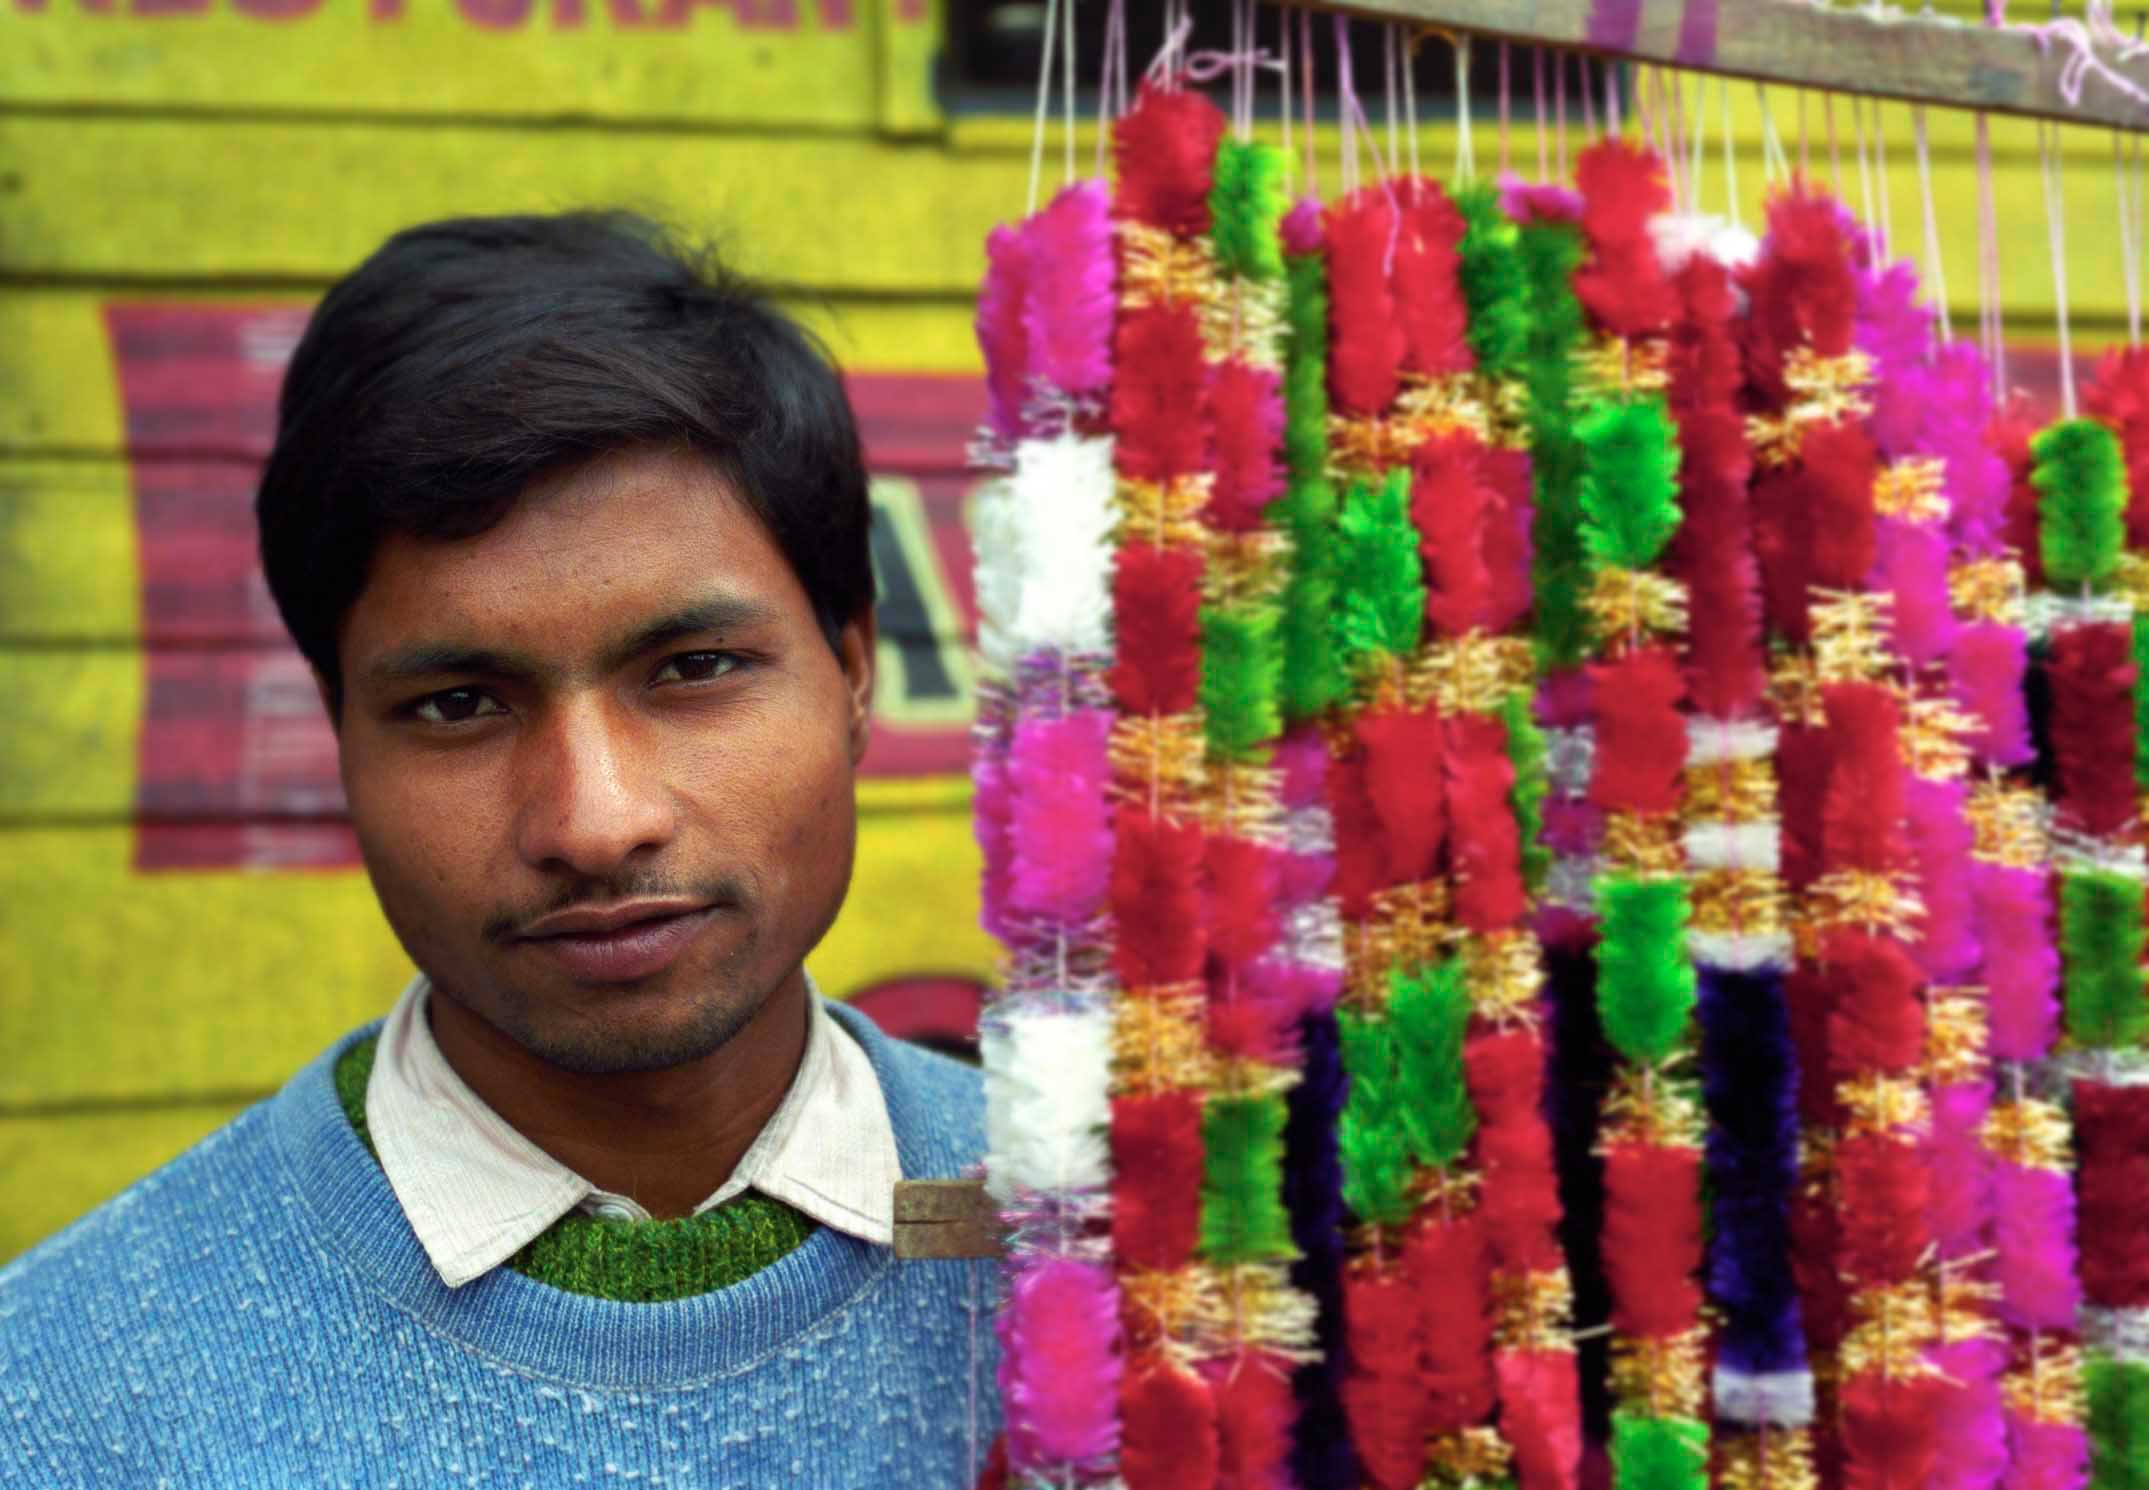 Selling garlands for Diwali festival